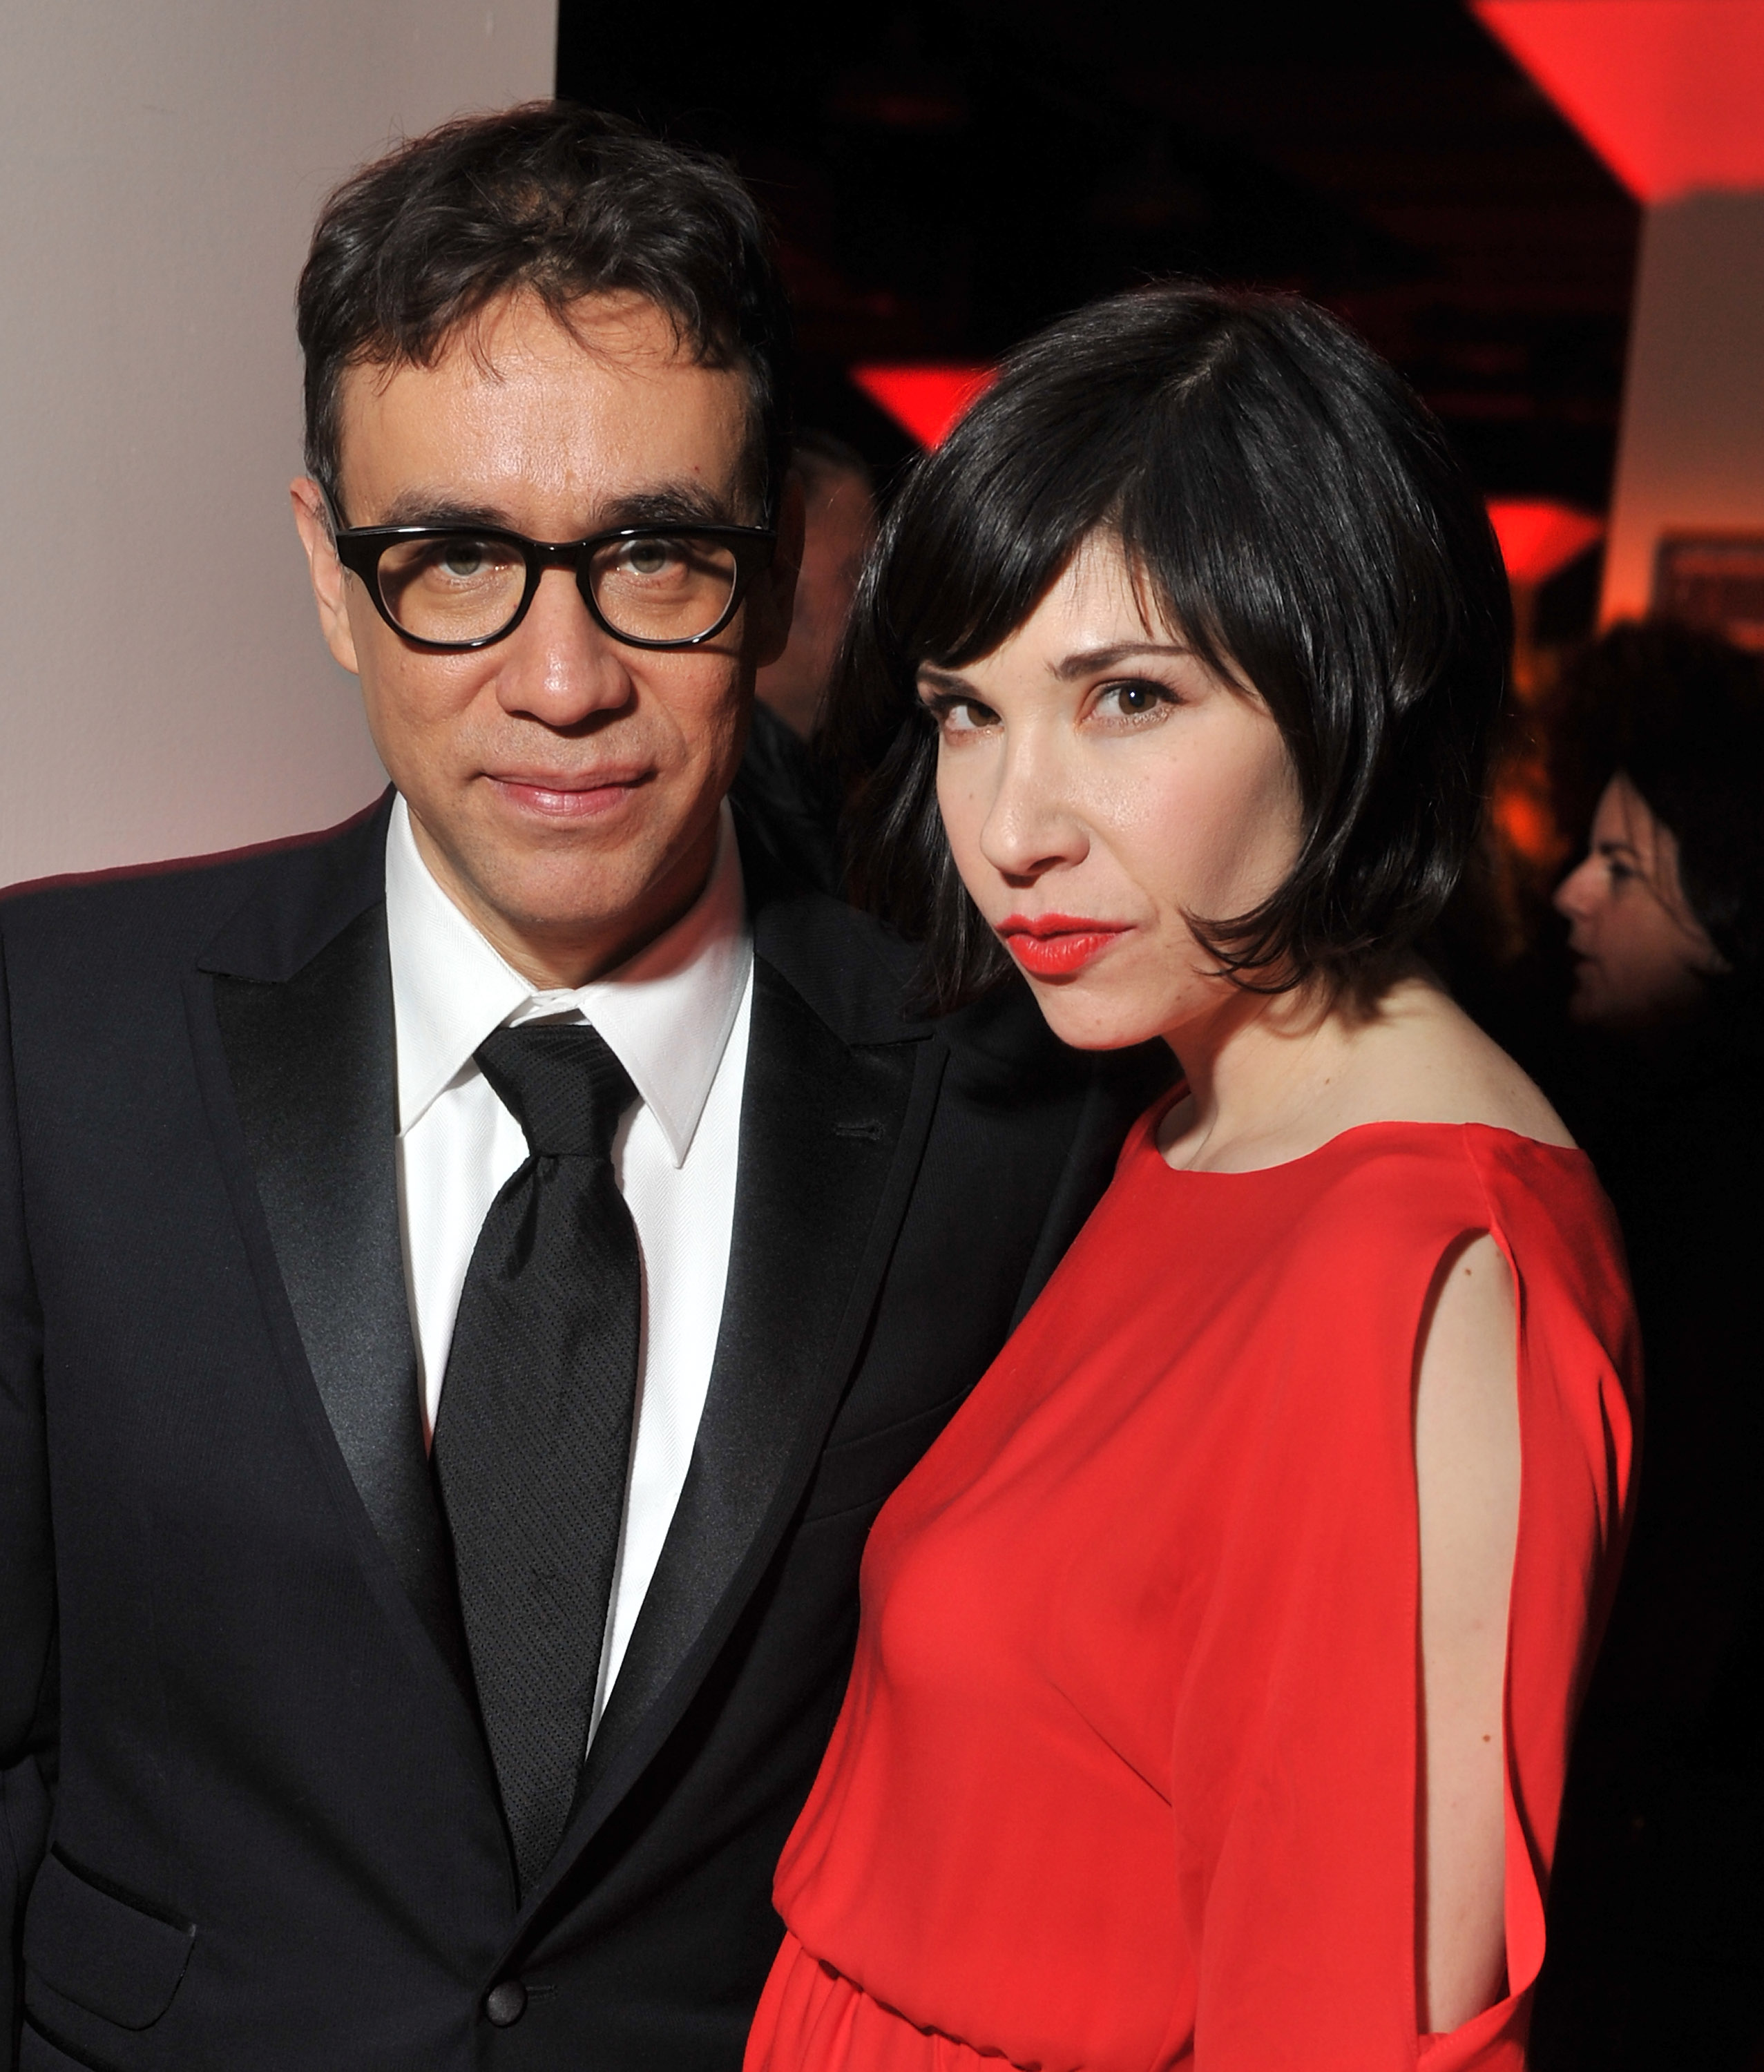 Fred armisen dating carrie brownstein